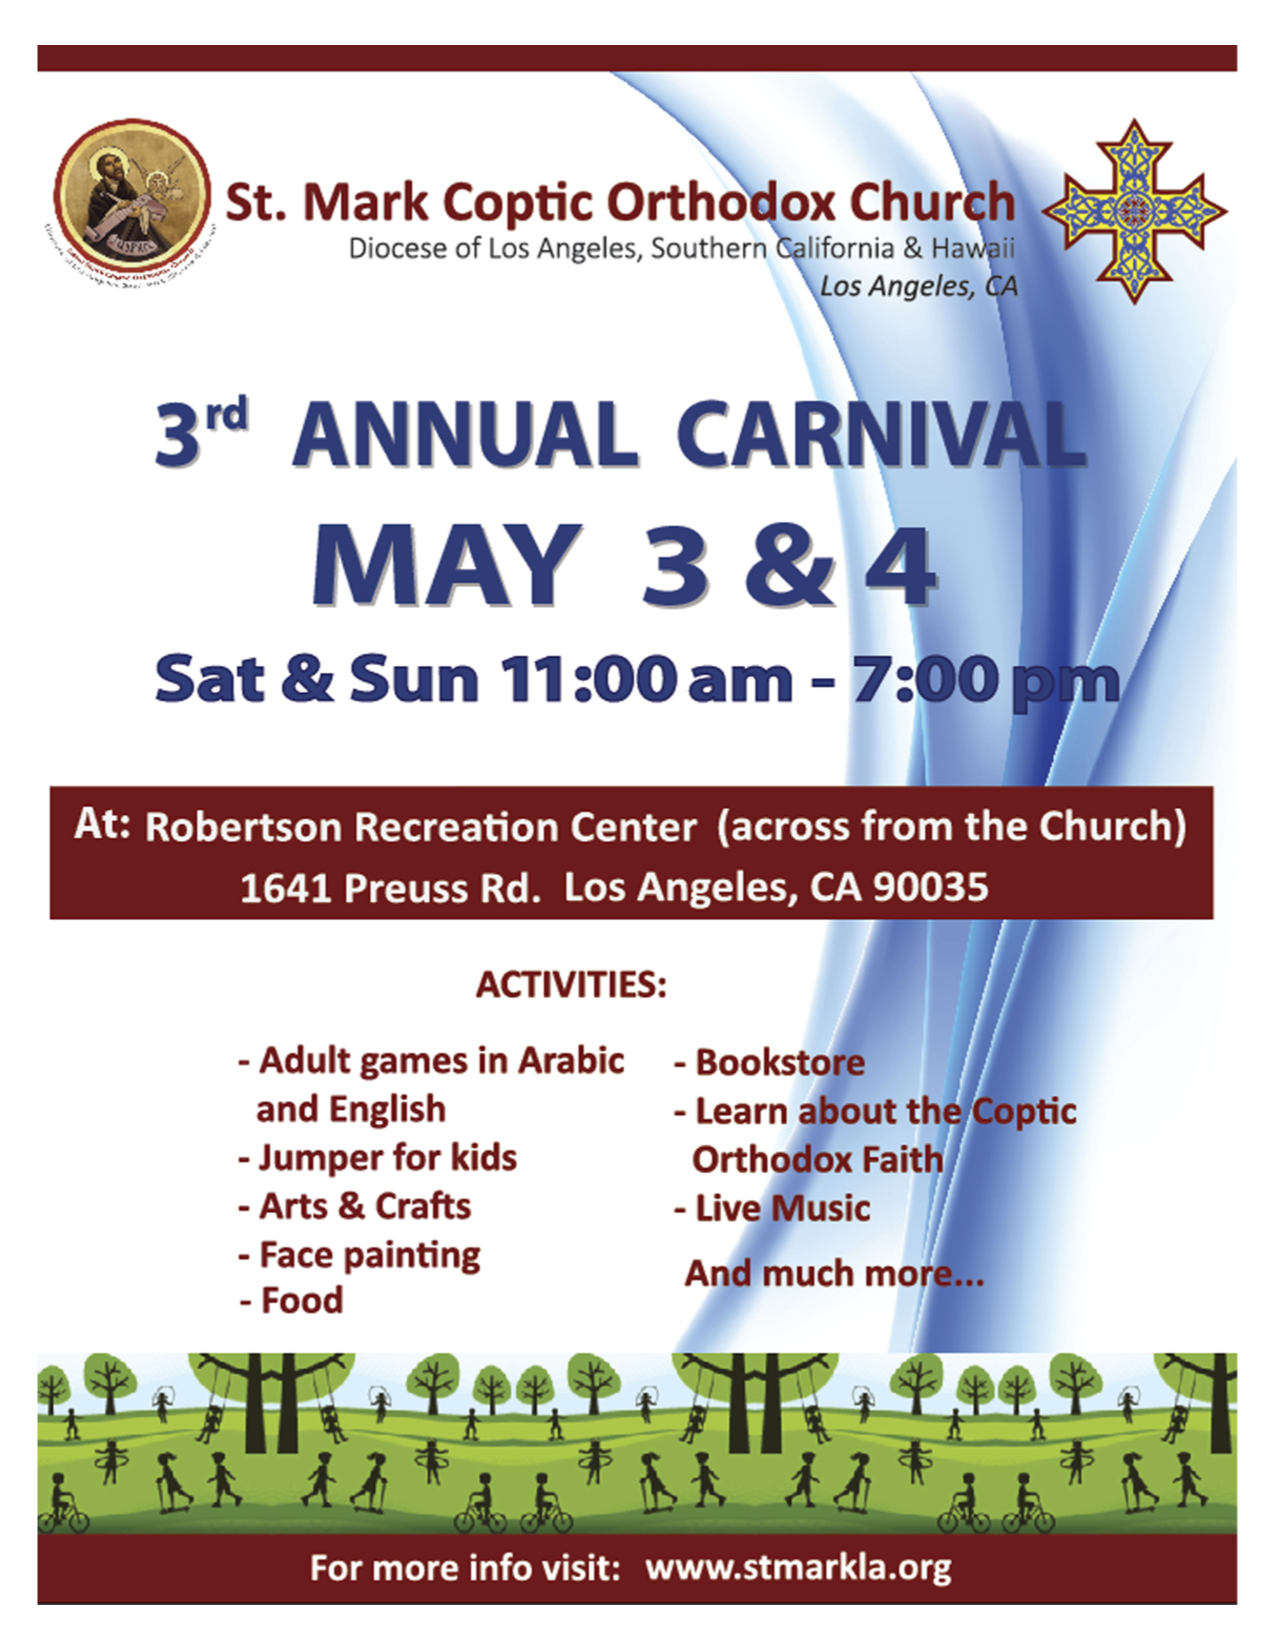 St. Mark's 3rd Annual Carnival | May 3-4